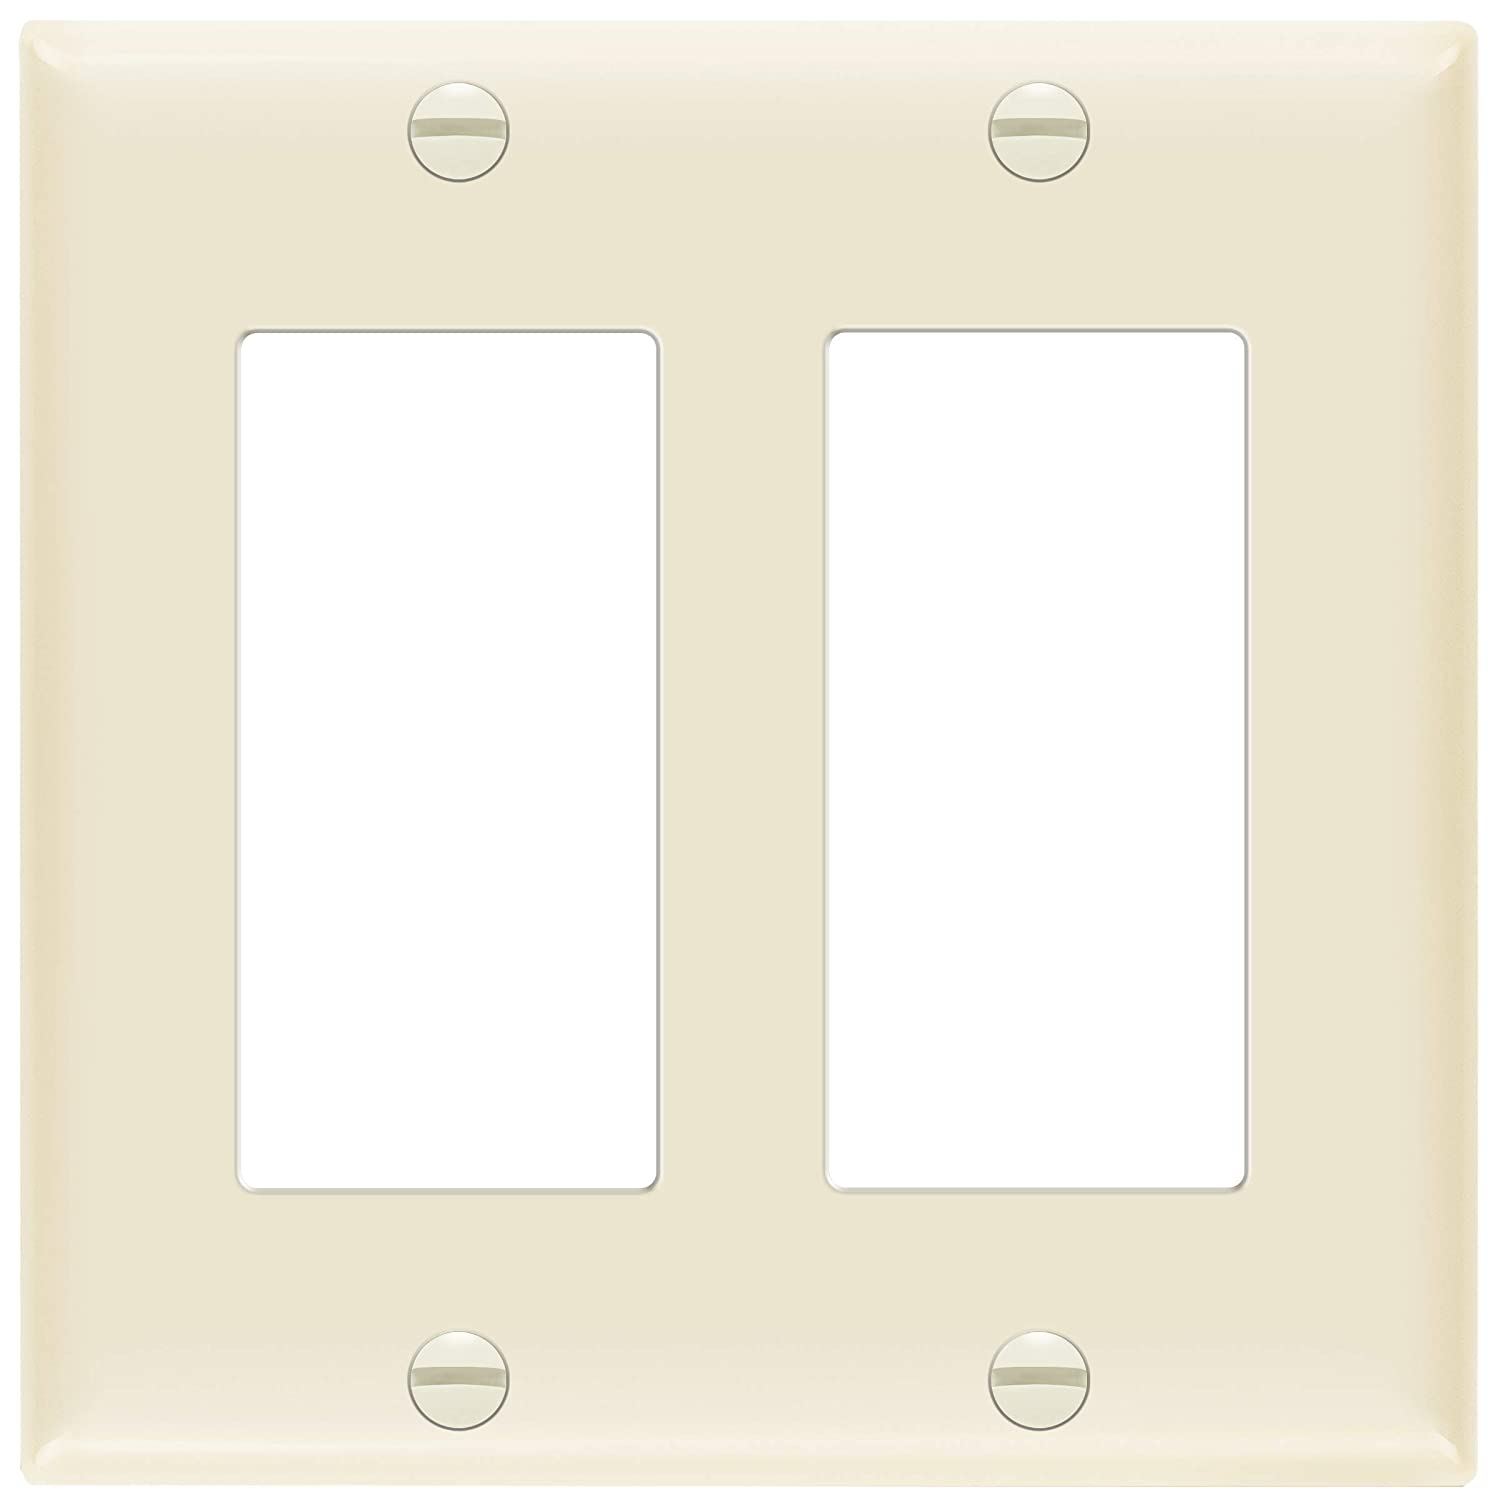 "ENERLITES Decorator Light Switch or Receptacle Outlet Wall Plate, Size 2-Gang 4.50"" x 4.57"", Unbreakable Polycarbonate Thermoplastic, UL Listed, 8832-LA, Light Almond"